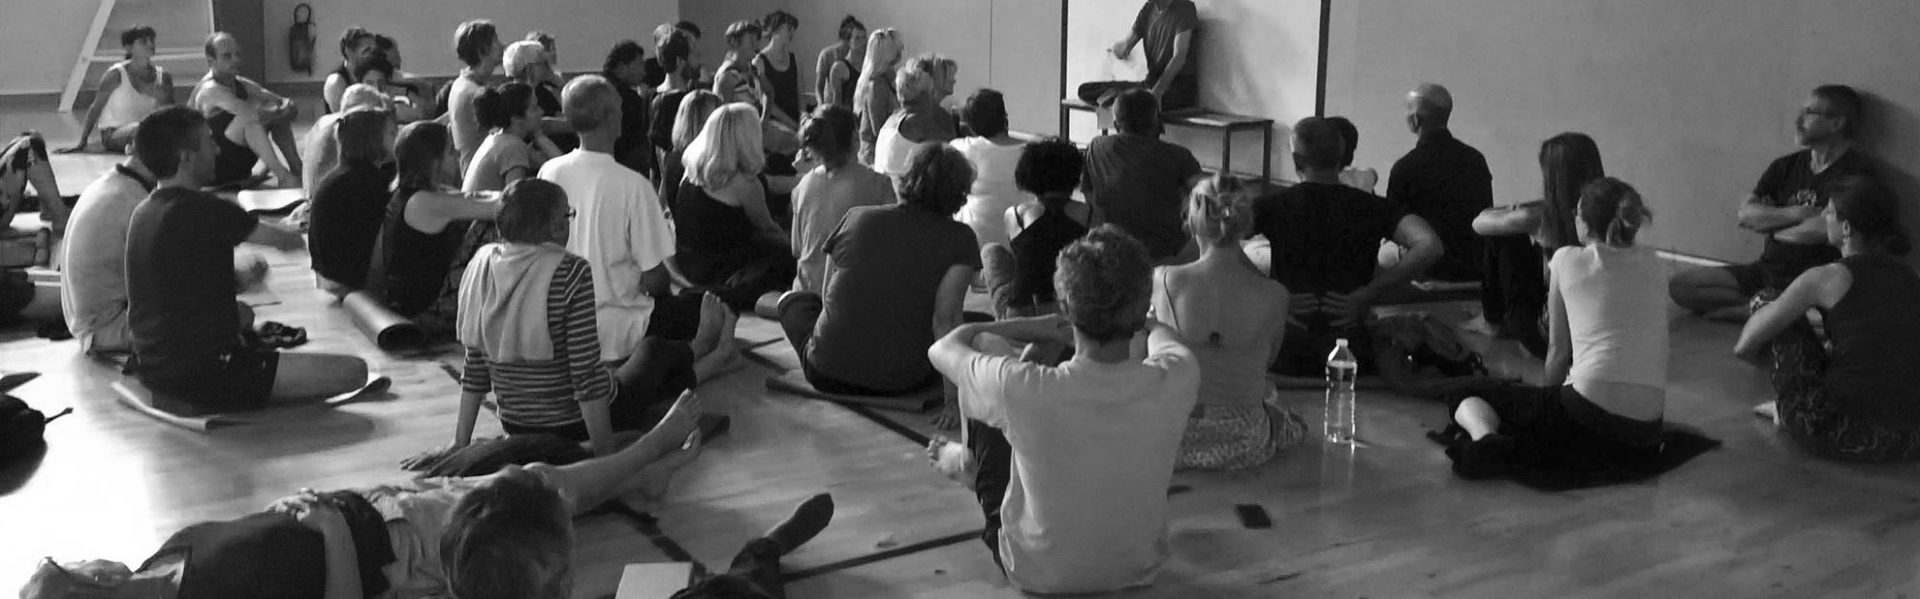 Ashtanga Yoga Aix